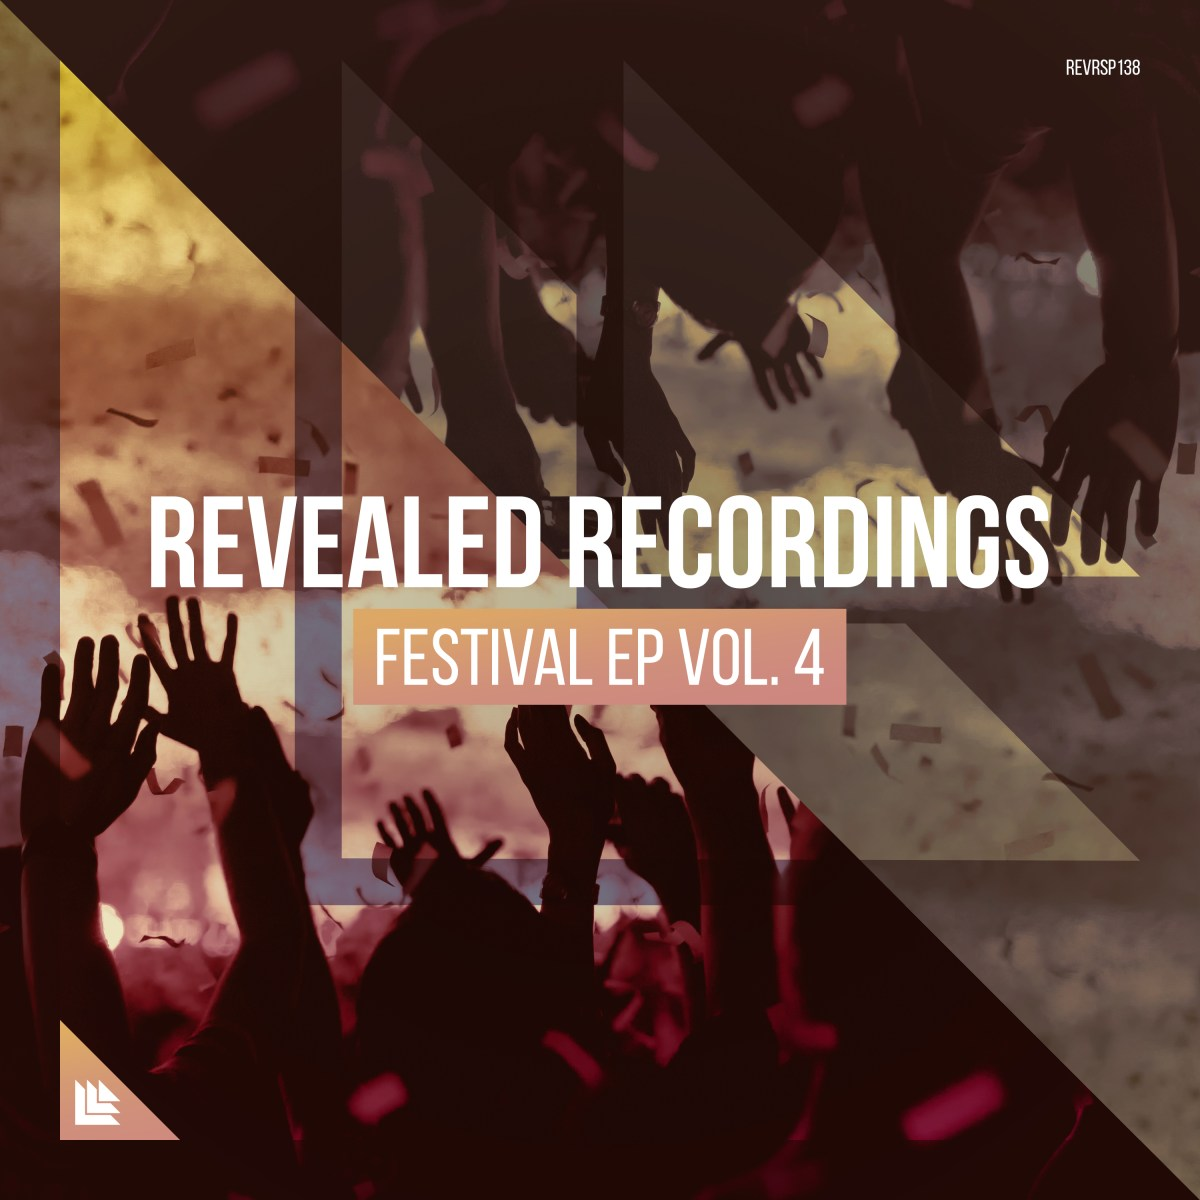 Revealed Recordings - Festival EP Vol. 4